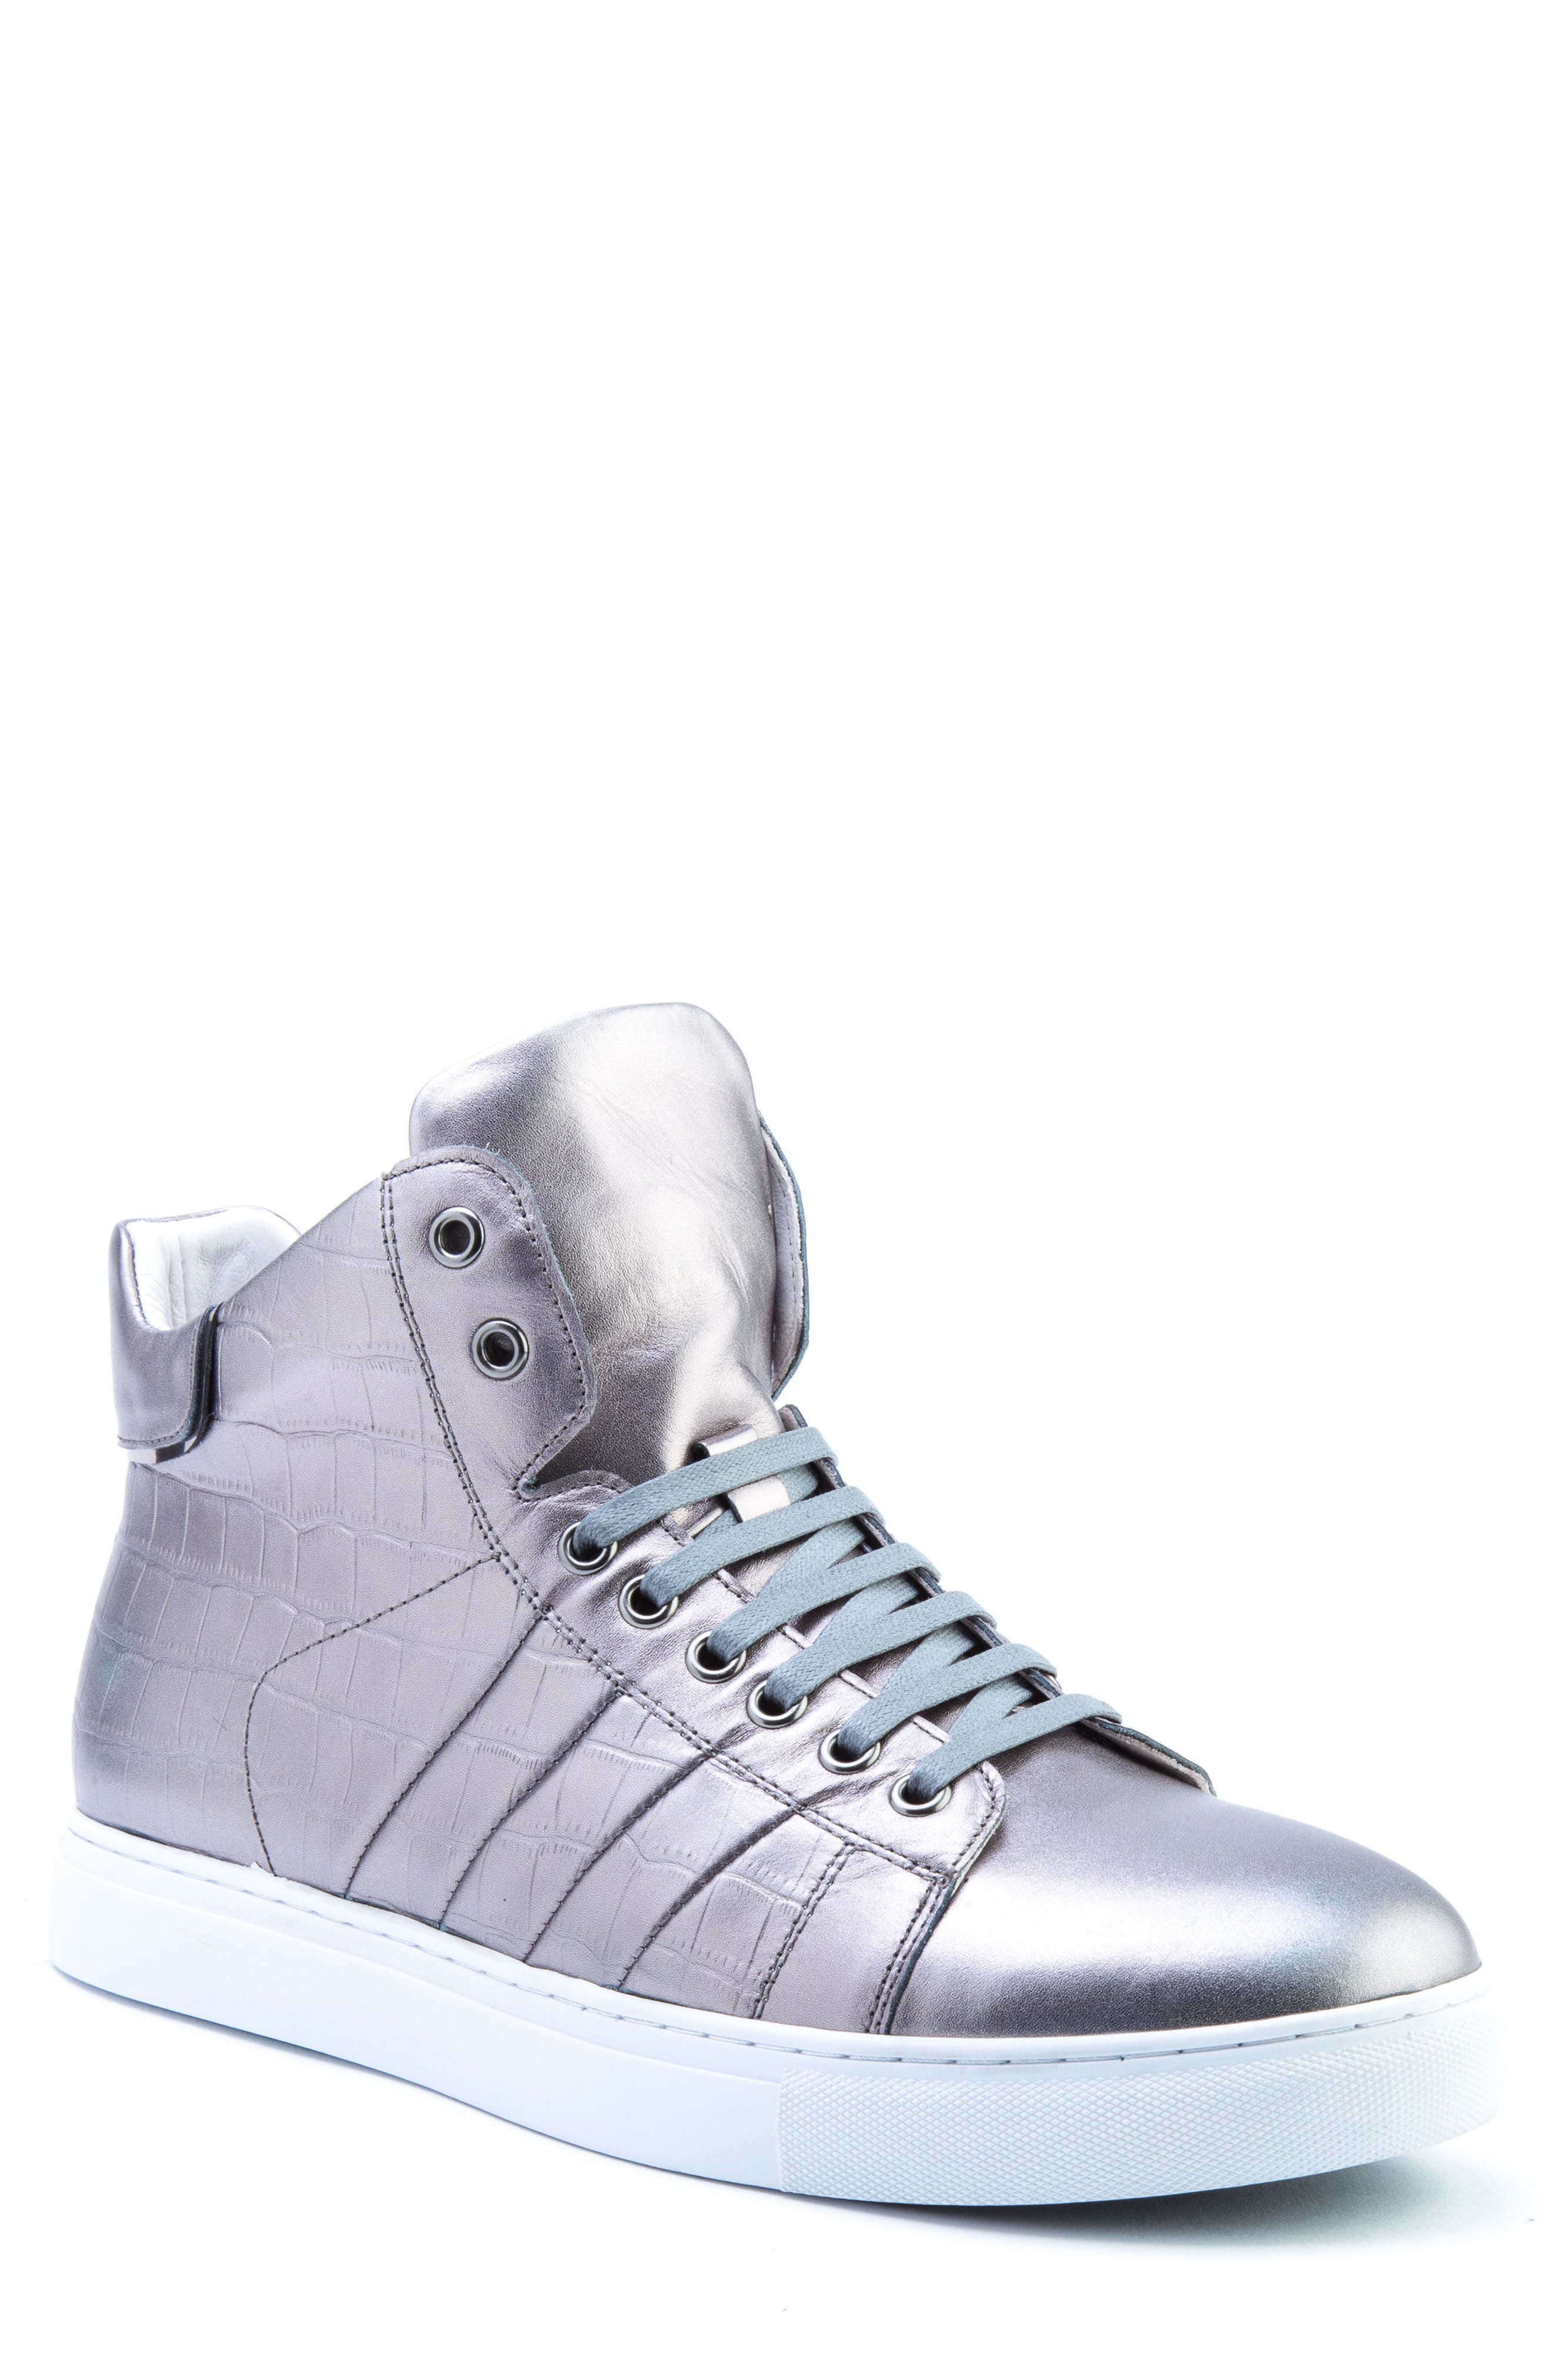 Image of Badgley Mischka Clift High Top Sneaker